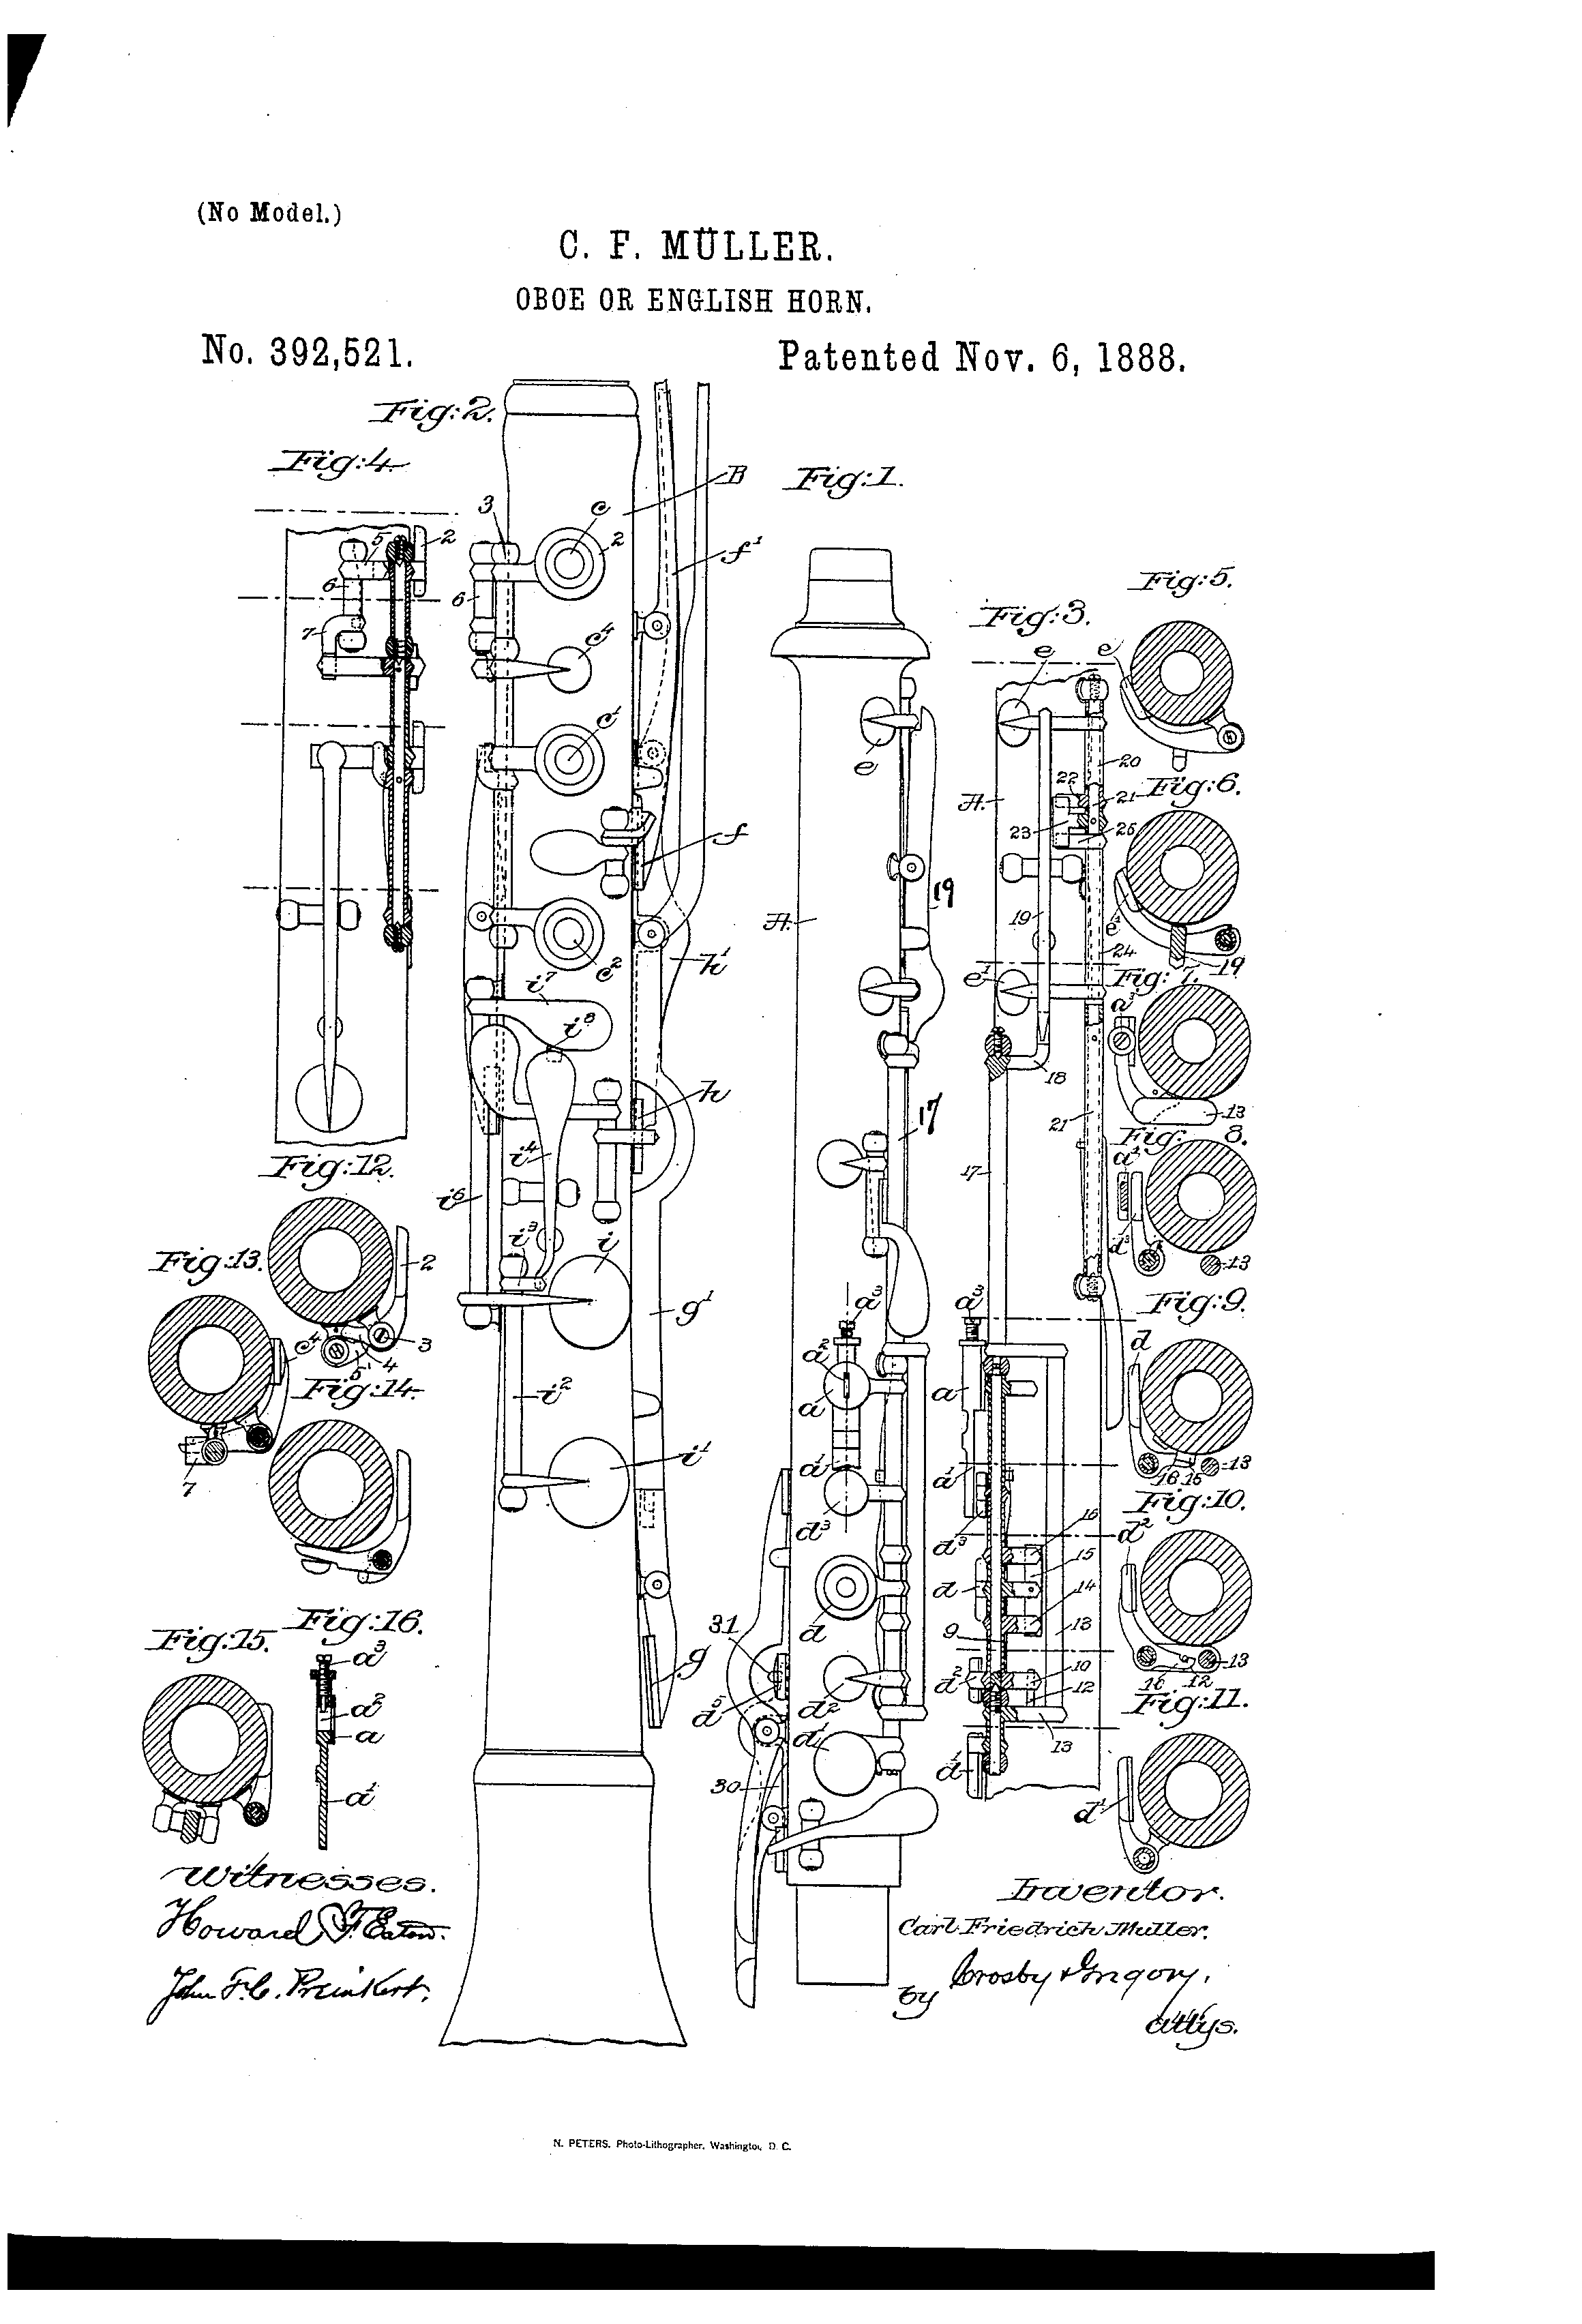 small resolution of patent us392521 oboe or english horn google patents english horn oboe musical